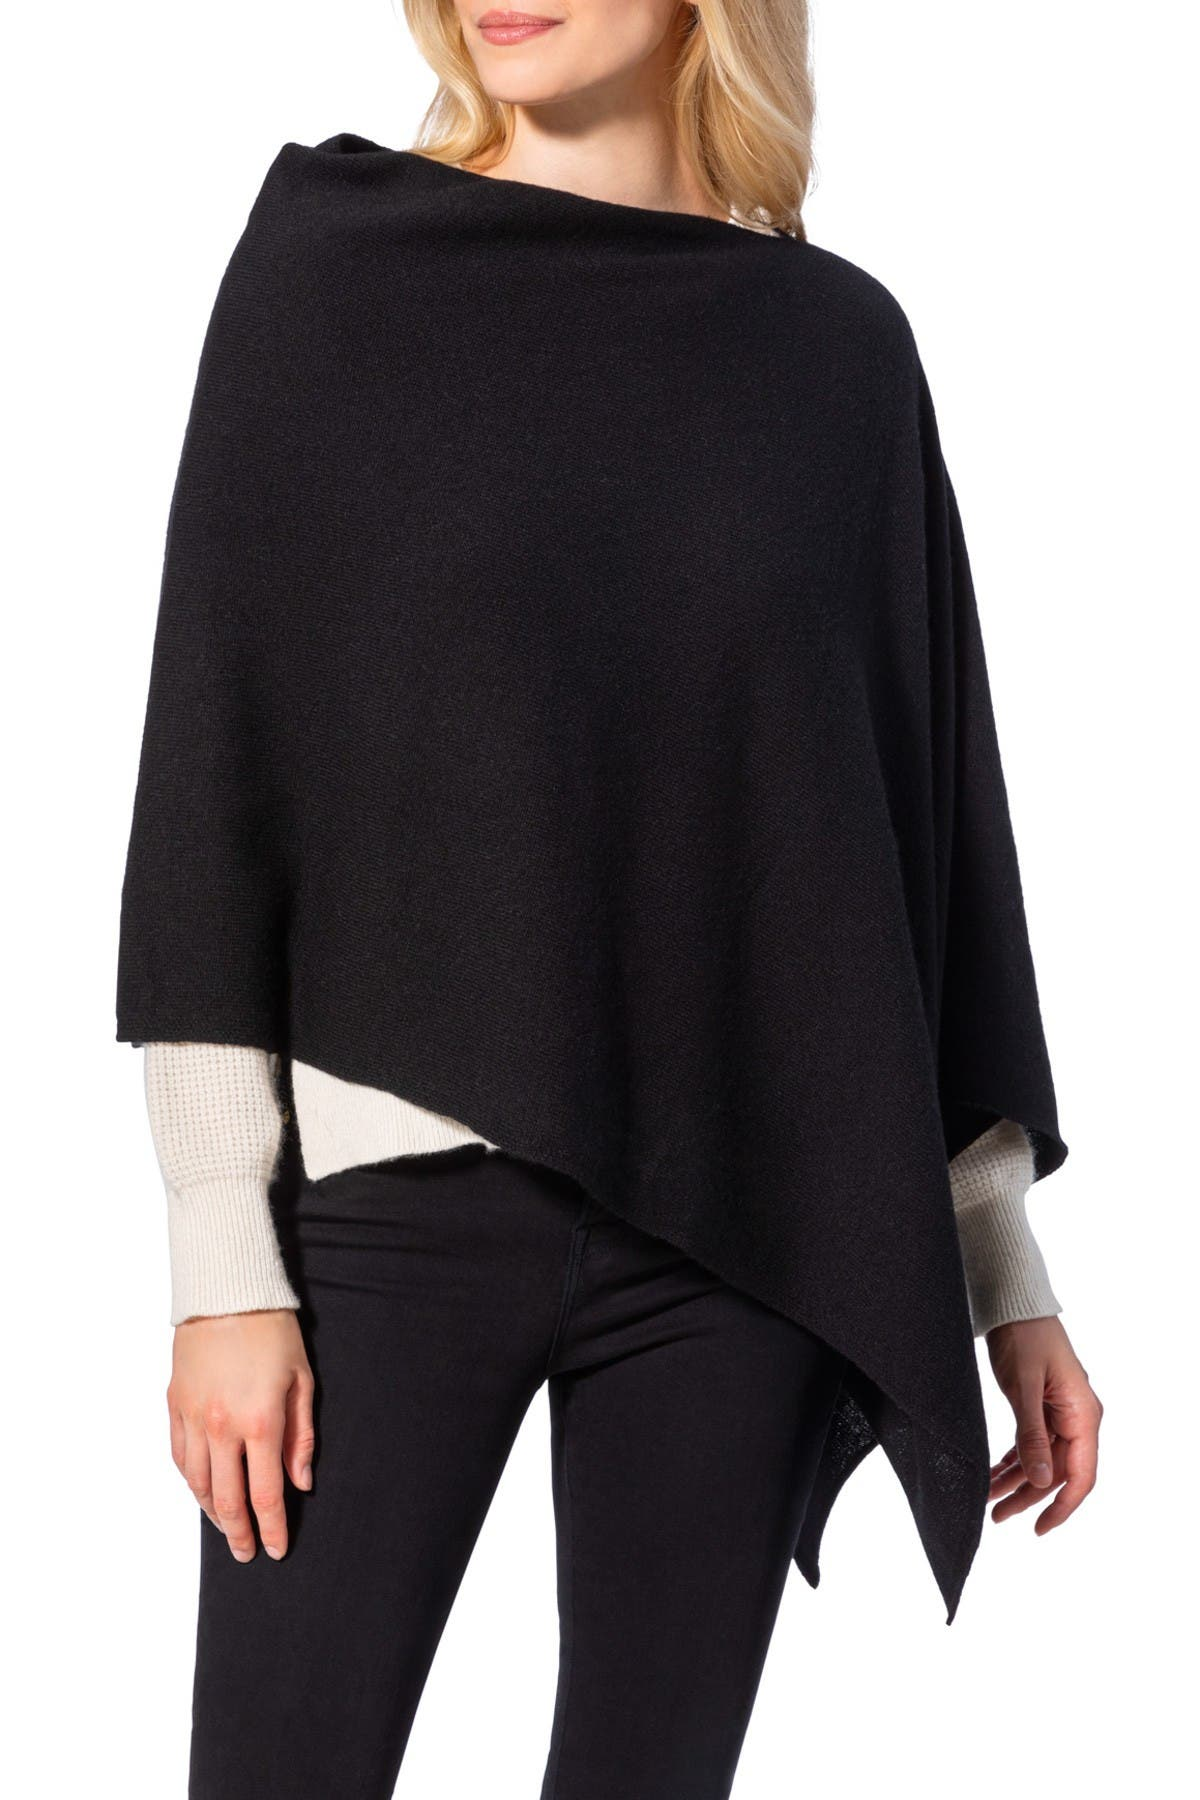 Image of AMICALE Cashmere Solid Knit Poncho